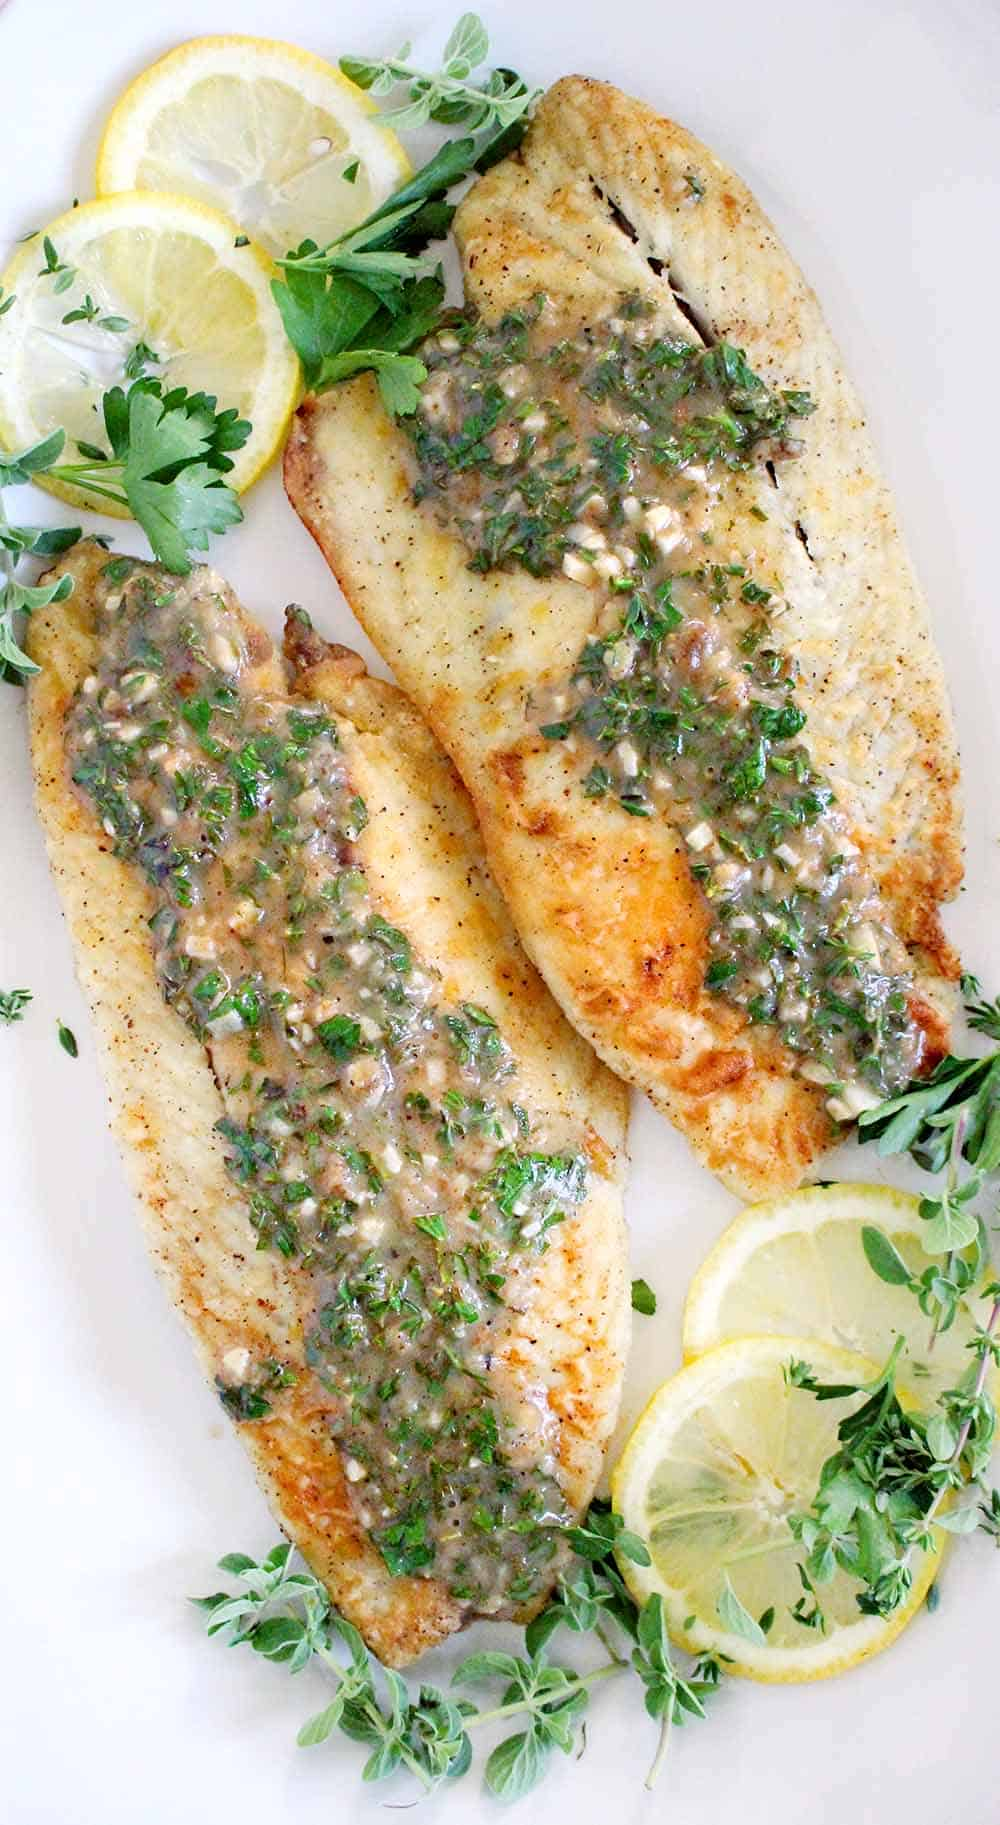 A close up photograph of pan fried sea bass with lemon garlic herb sauce